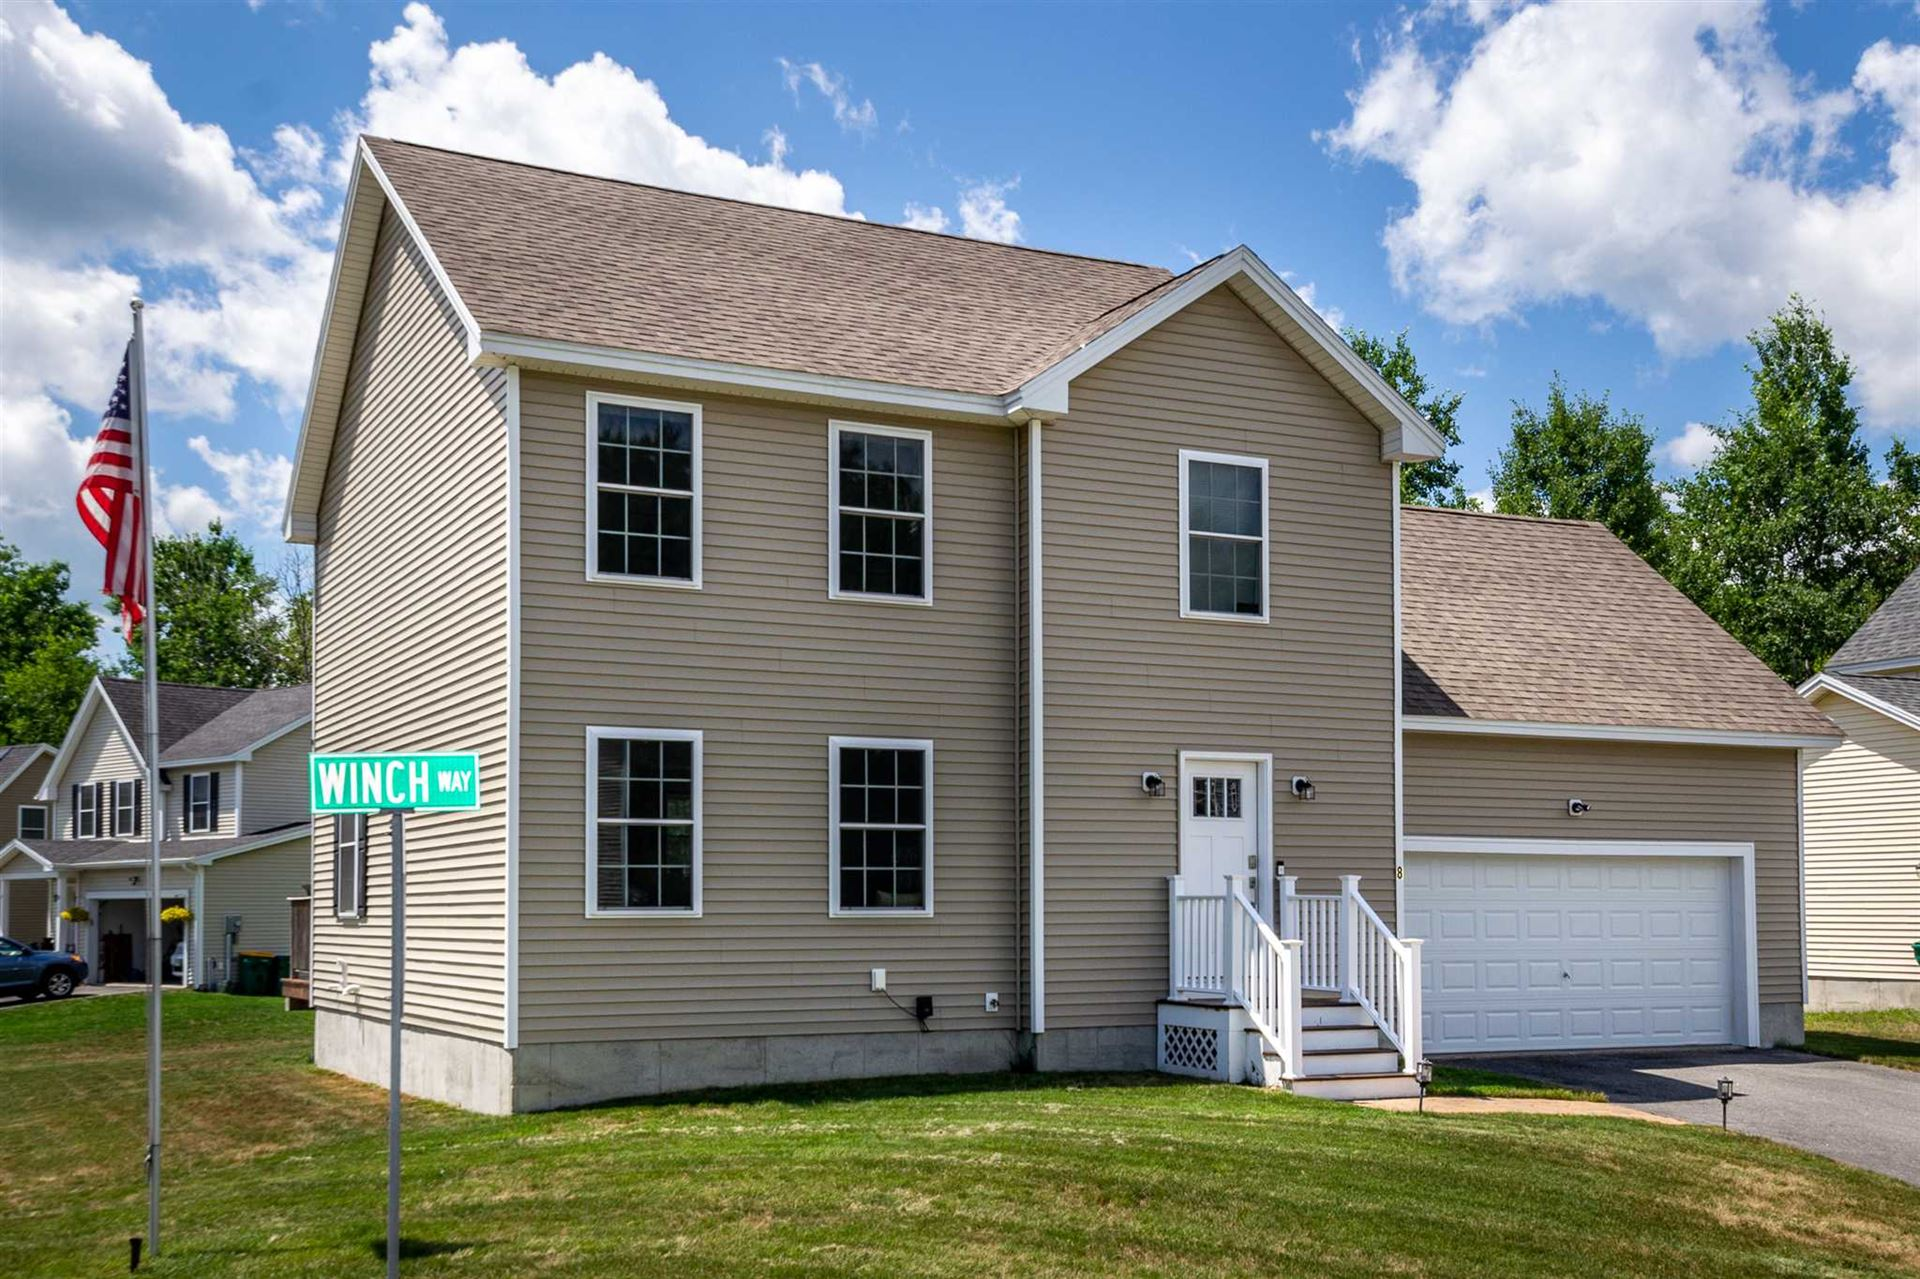 8 Winch Way, Rochester, NH 03868 - #: 4815095